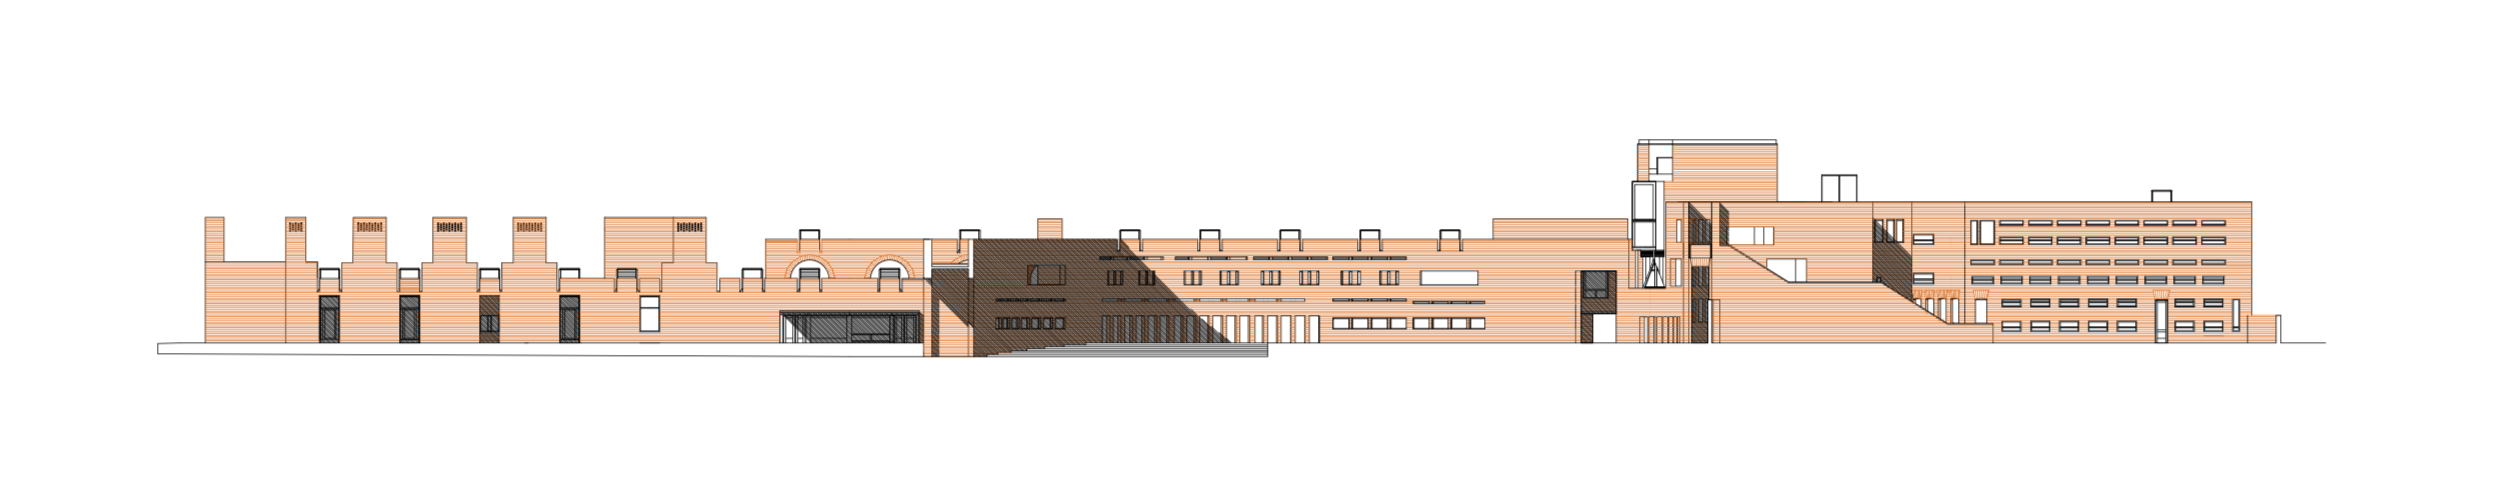 03 Elevation drawing 2